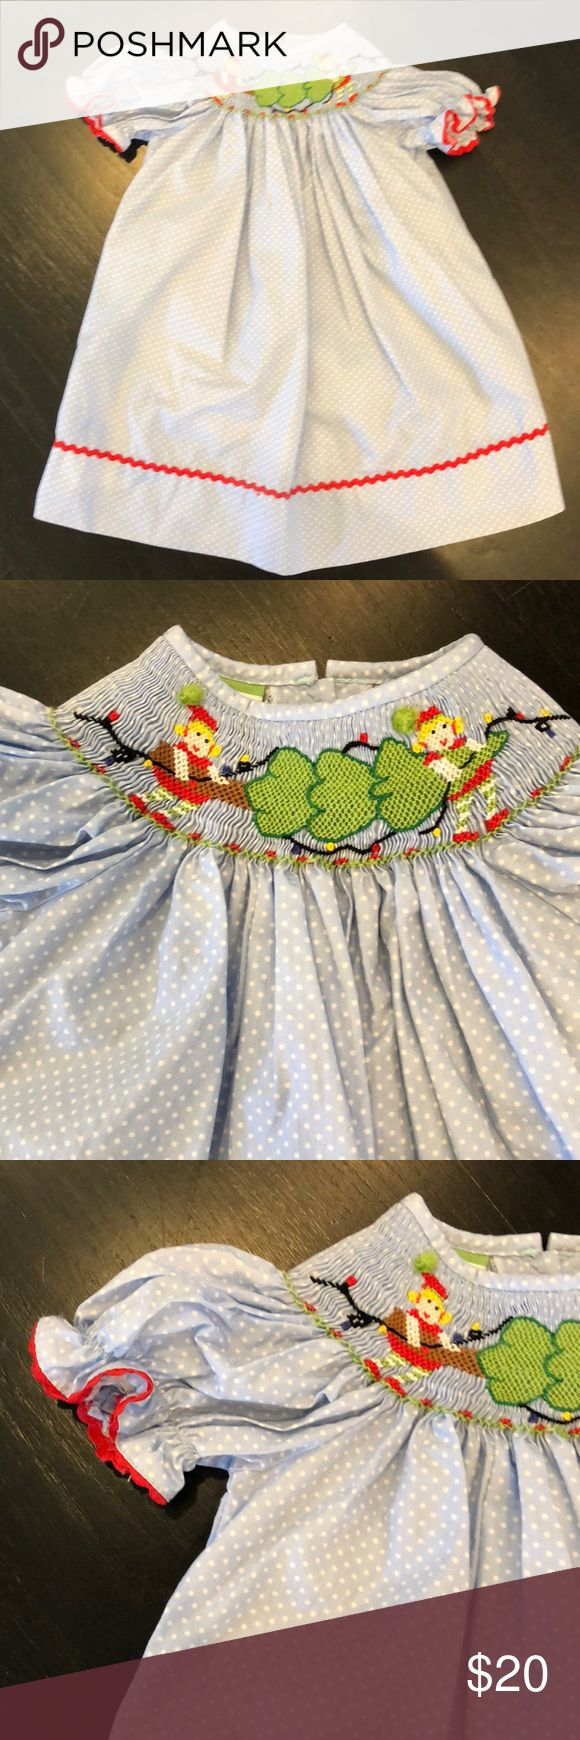 Girls 18mo Smocked Christmas Dress Girls 18mo Candyland smocked Christmas dress Smocked detailing of 2 elves carrying a Christmas tree and Christmas lights. 2 white buttons on back.  EUC-Only worn once. Candyland Dresses